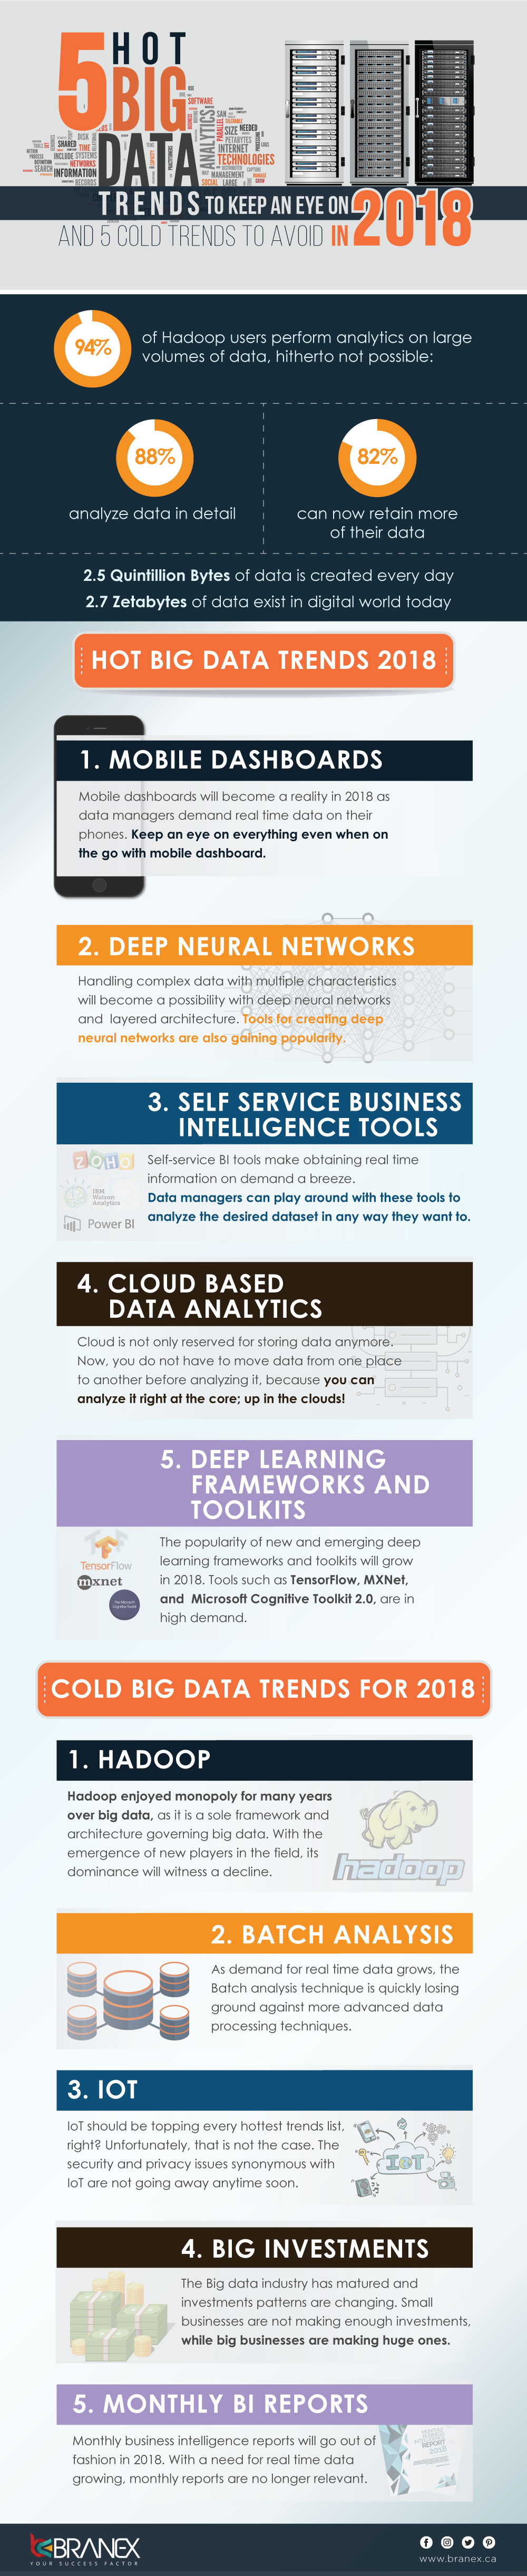 5 Hot and Cold Big Data Trends to Watch Out For in 2018 - Infographic